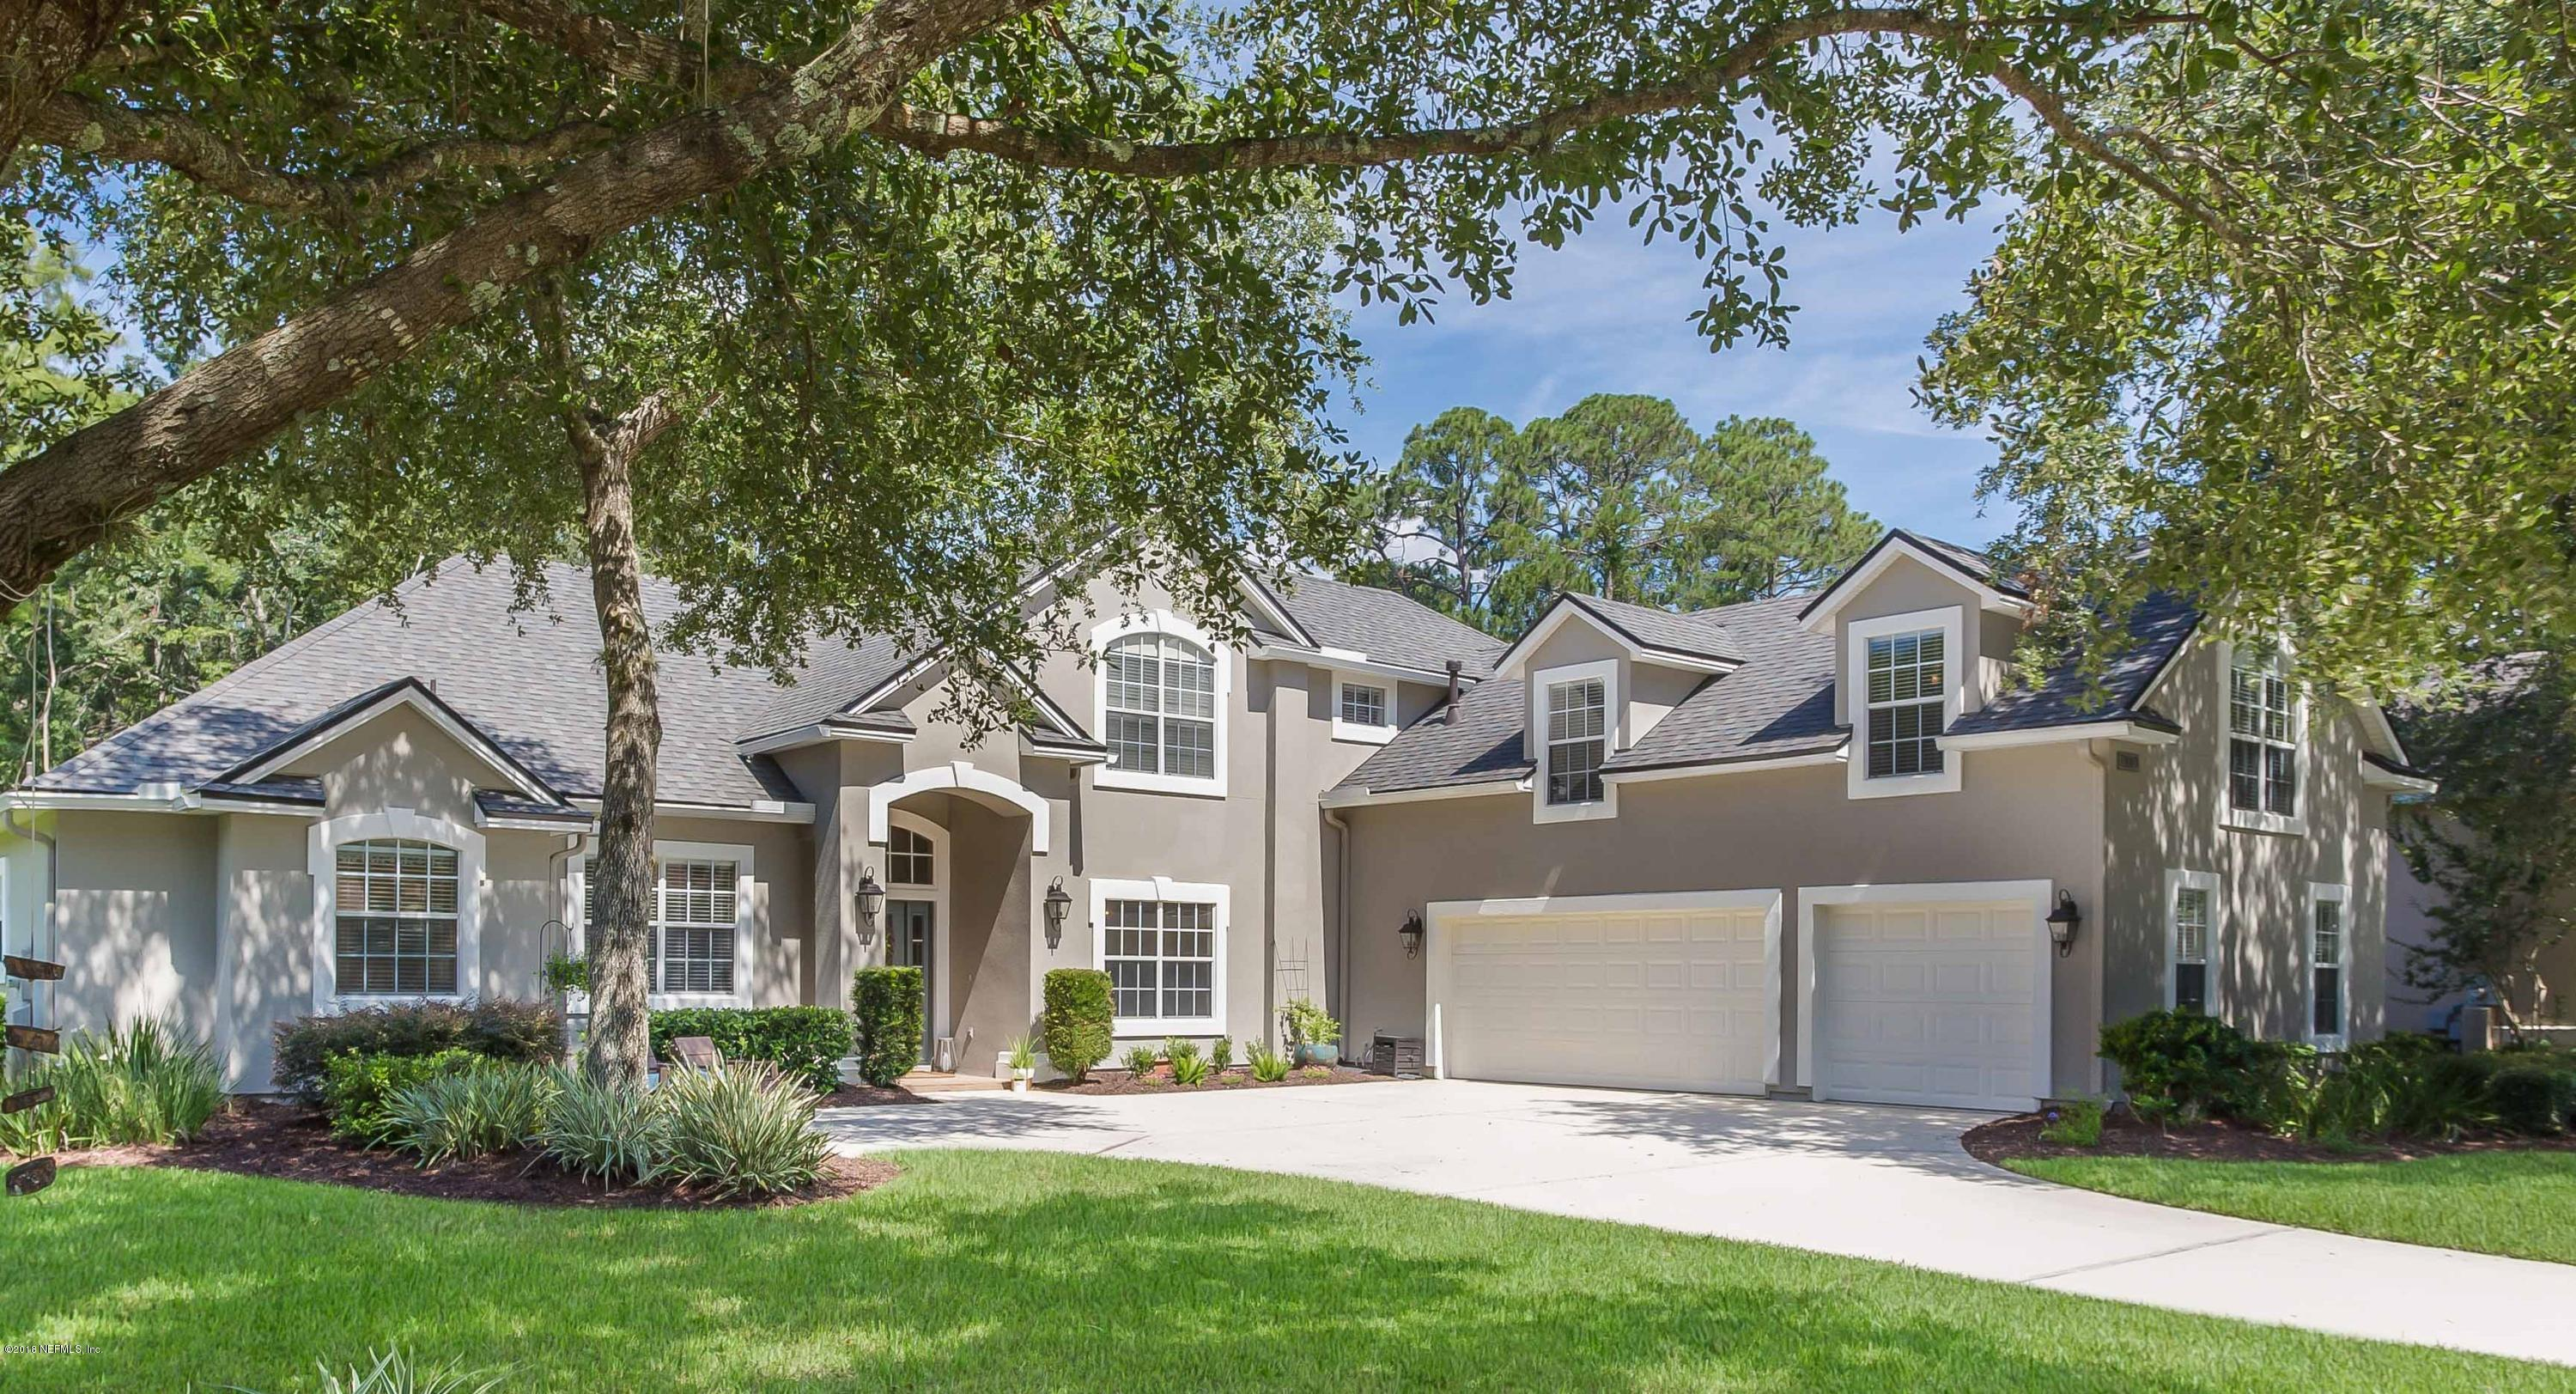 7810 RITTENHOUSE, JACKSONVILLE, FLORIDA 32256, 5 Bedrooms Bedrooms, ,4 BathroomsBathrooms,Residential - single family,For sale,RITTENHOUSE,945293